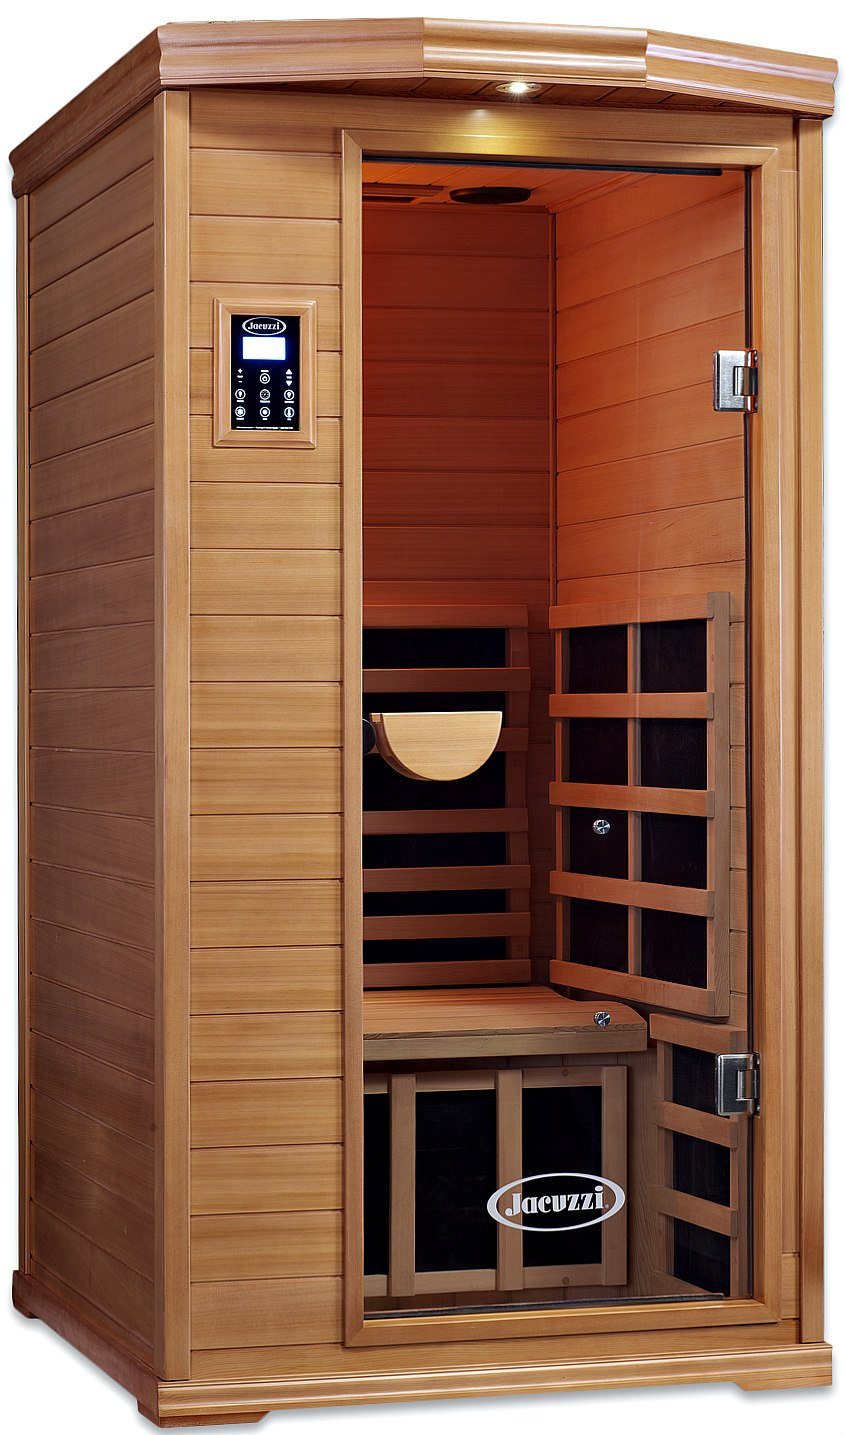 ClearLight Jacuzzi IS-1-GS Glass Premier 1 One Person Sauna Red Cedar - Infrared Fusion Power Carbon-Ceramic Heaters, Near Zero EMF - Chromotherapy Lights, Bluetooth AUX MP3 Audio Inputs